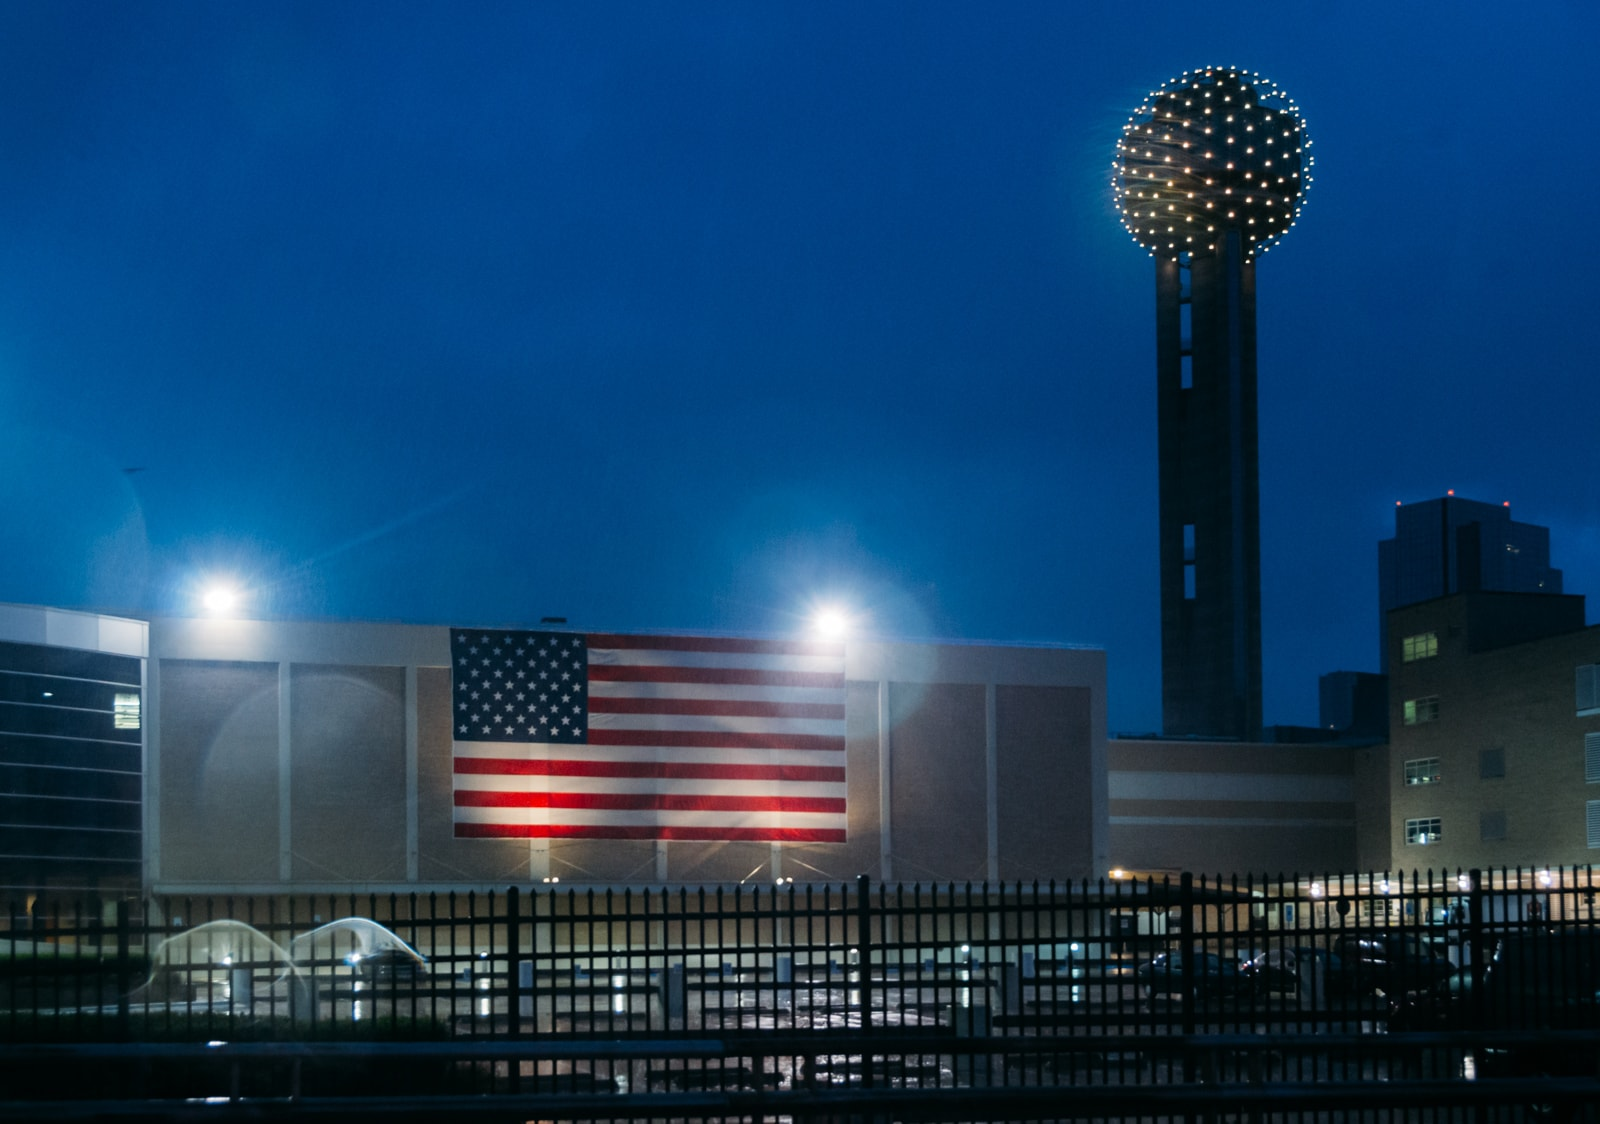 American Flag and Reunion Tower after a storm in Dallas